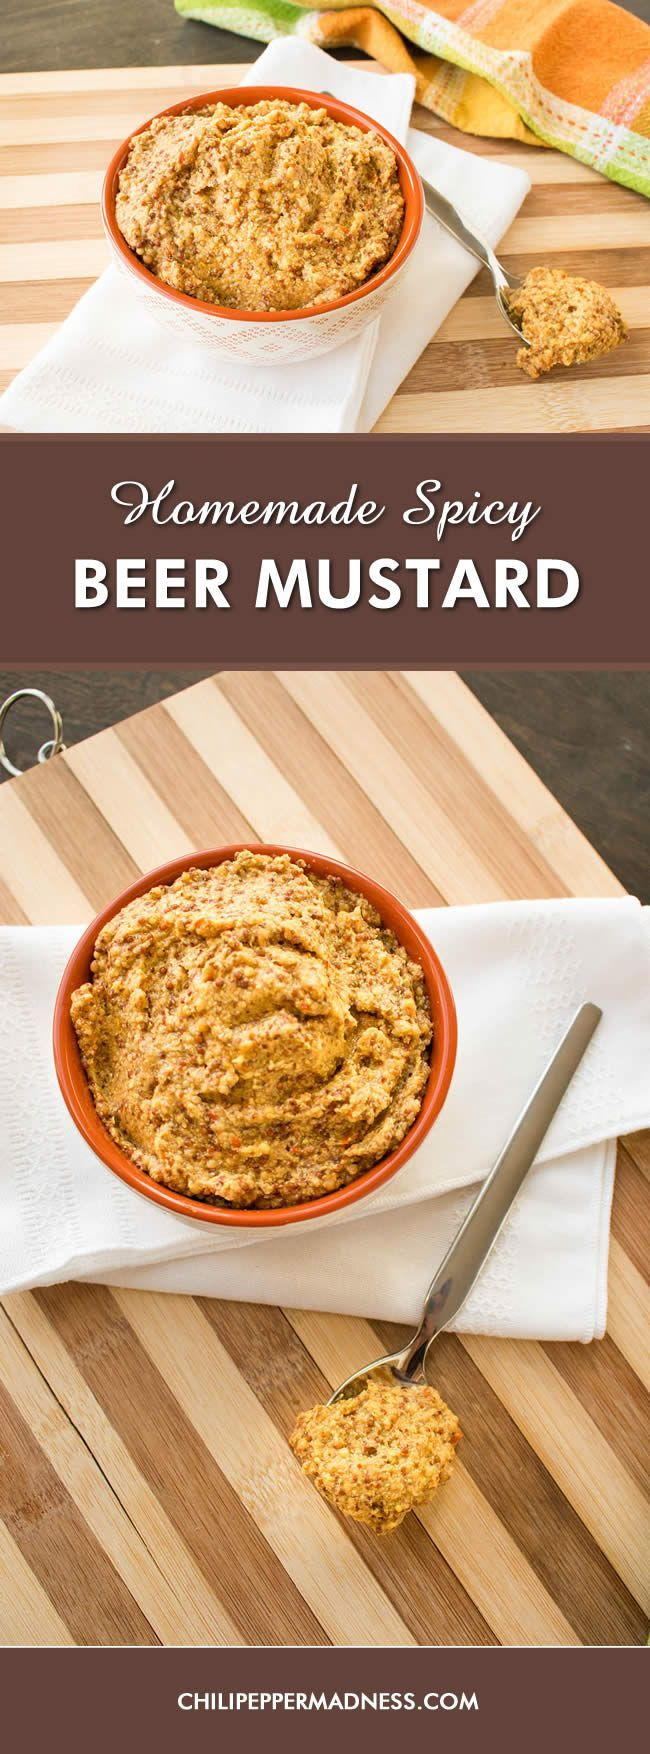 Homemade Whole Grain Spicy Beer Mustard - Make your own whole grain mustard at home with this recipe, using brown and yellow mustard seeds, IPA beer, apple cider vinegar, and 7-pot chili peppers that offer a blast of wondrous heat.